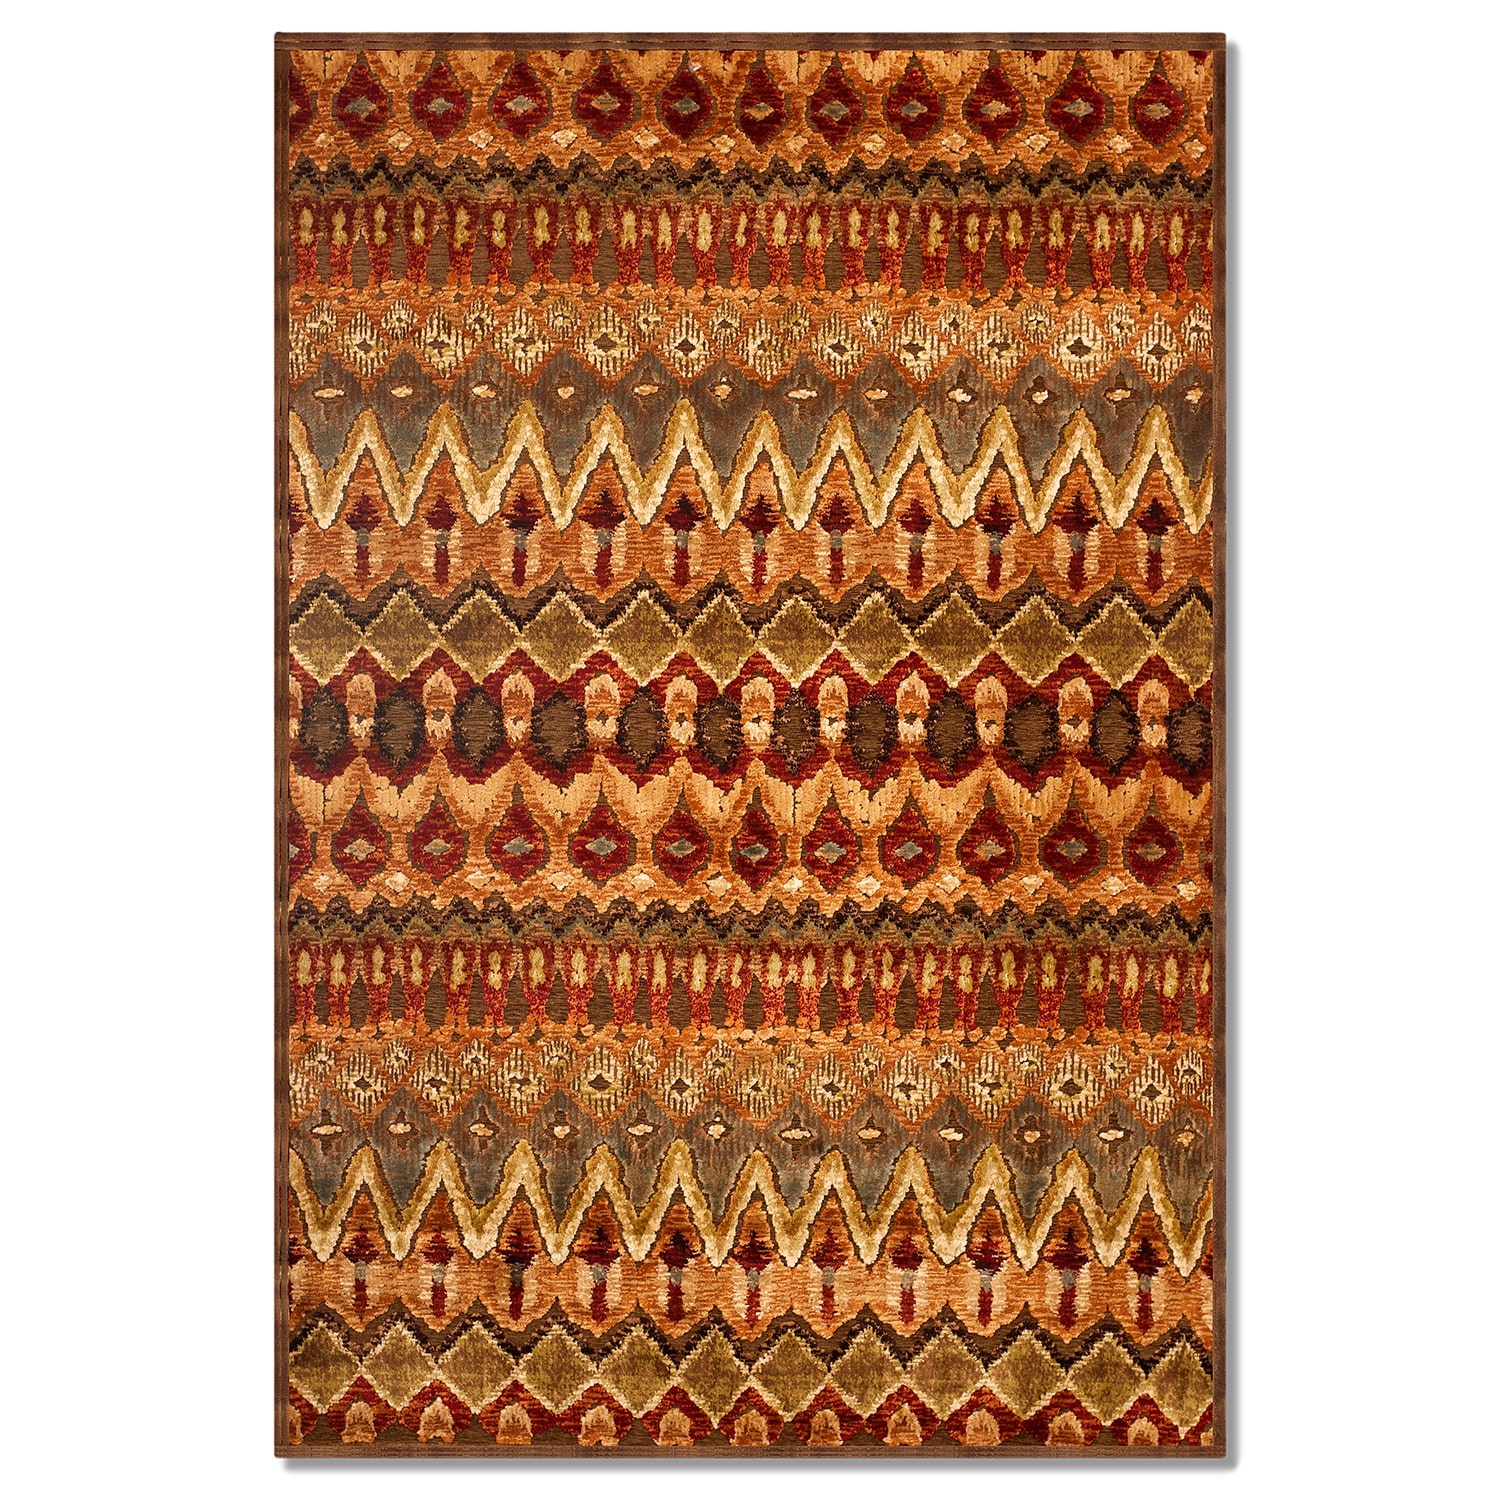 Rugs - Napa Zigzag Area Rug - Red and Beige